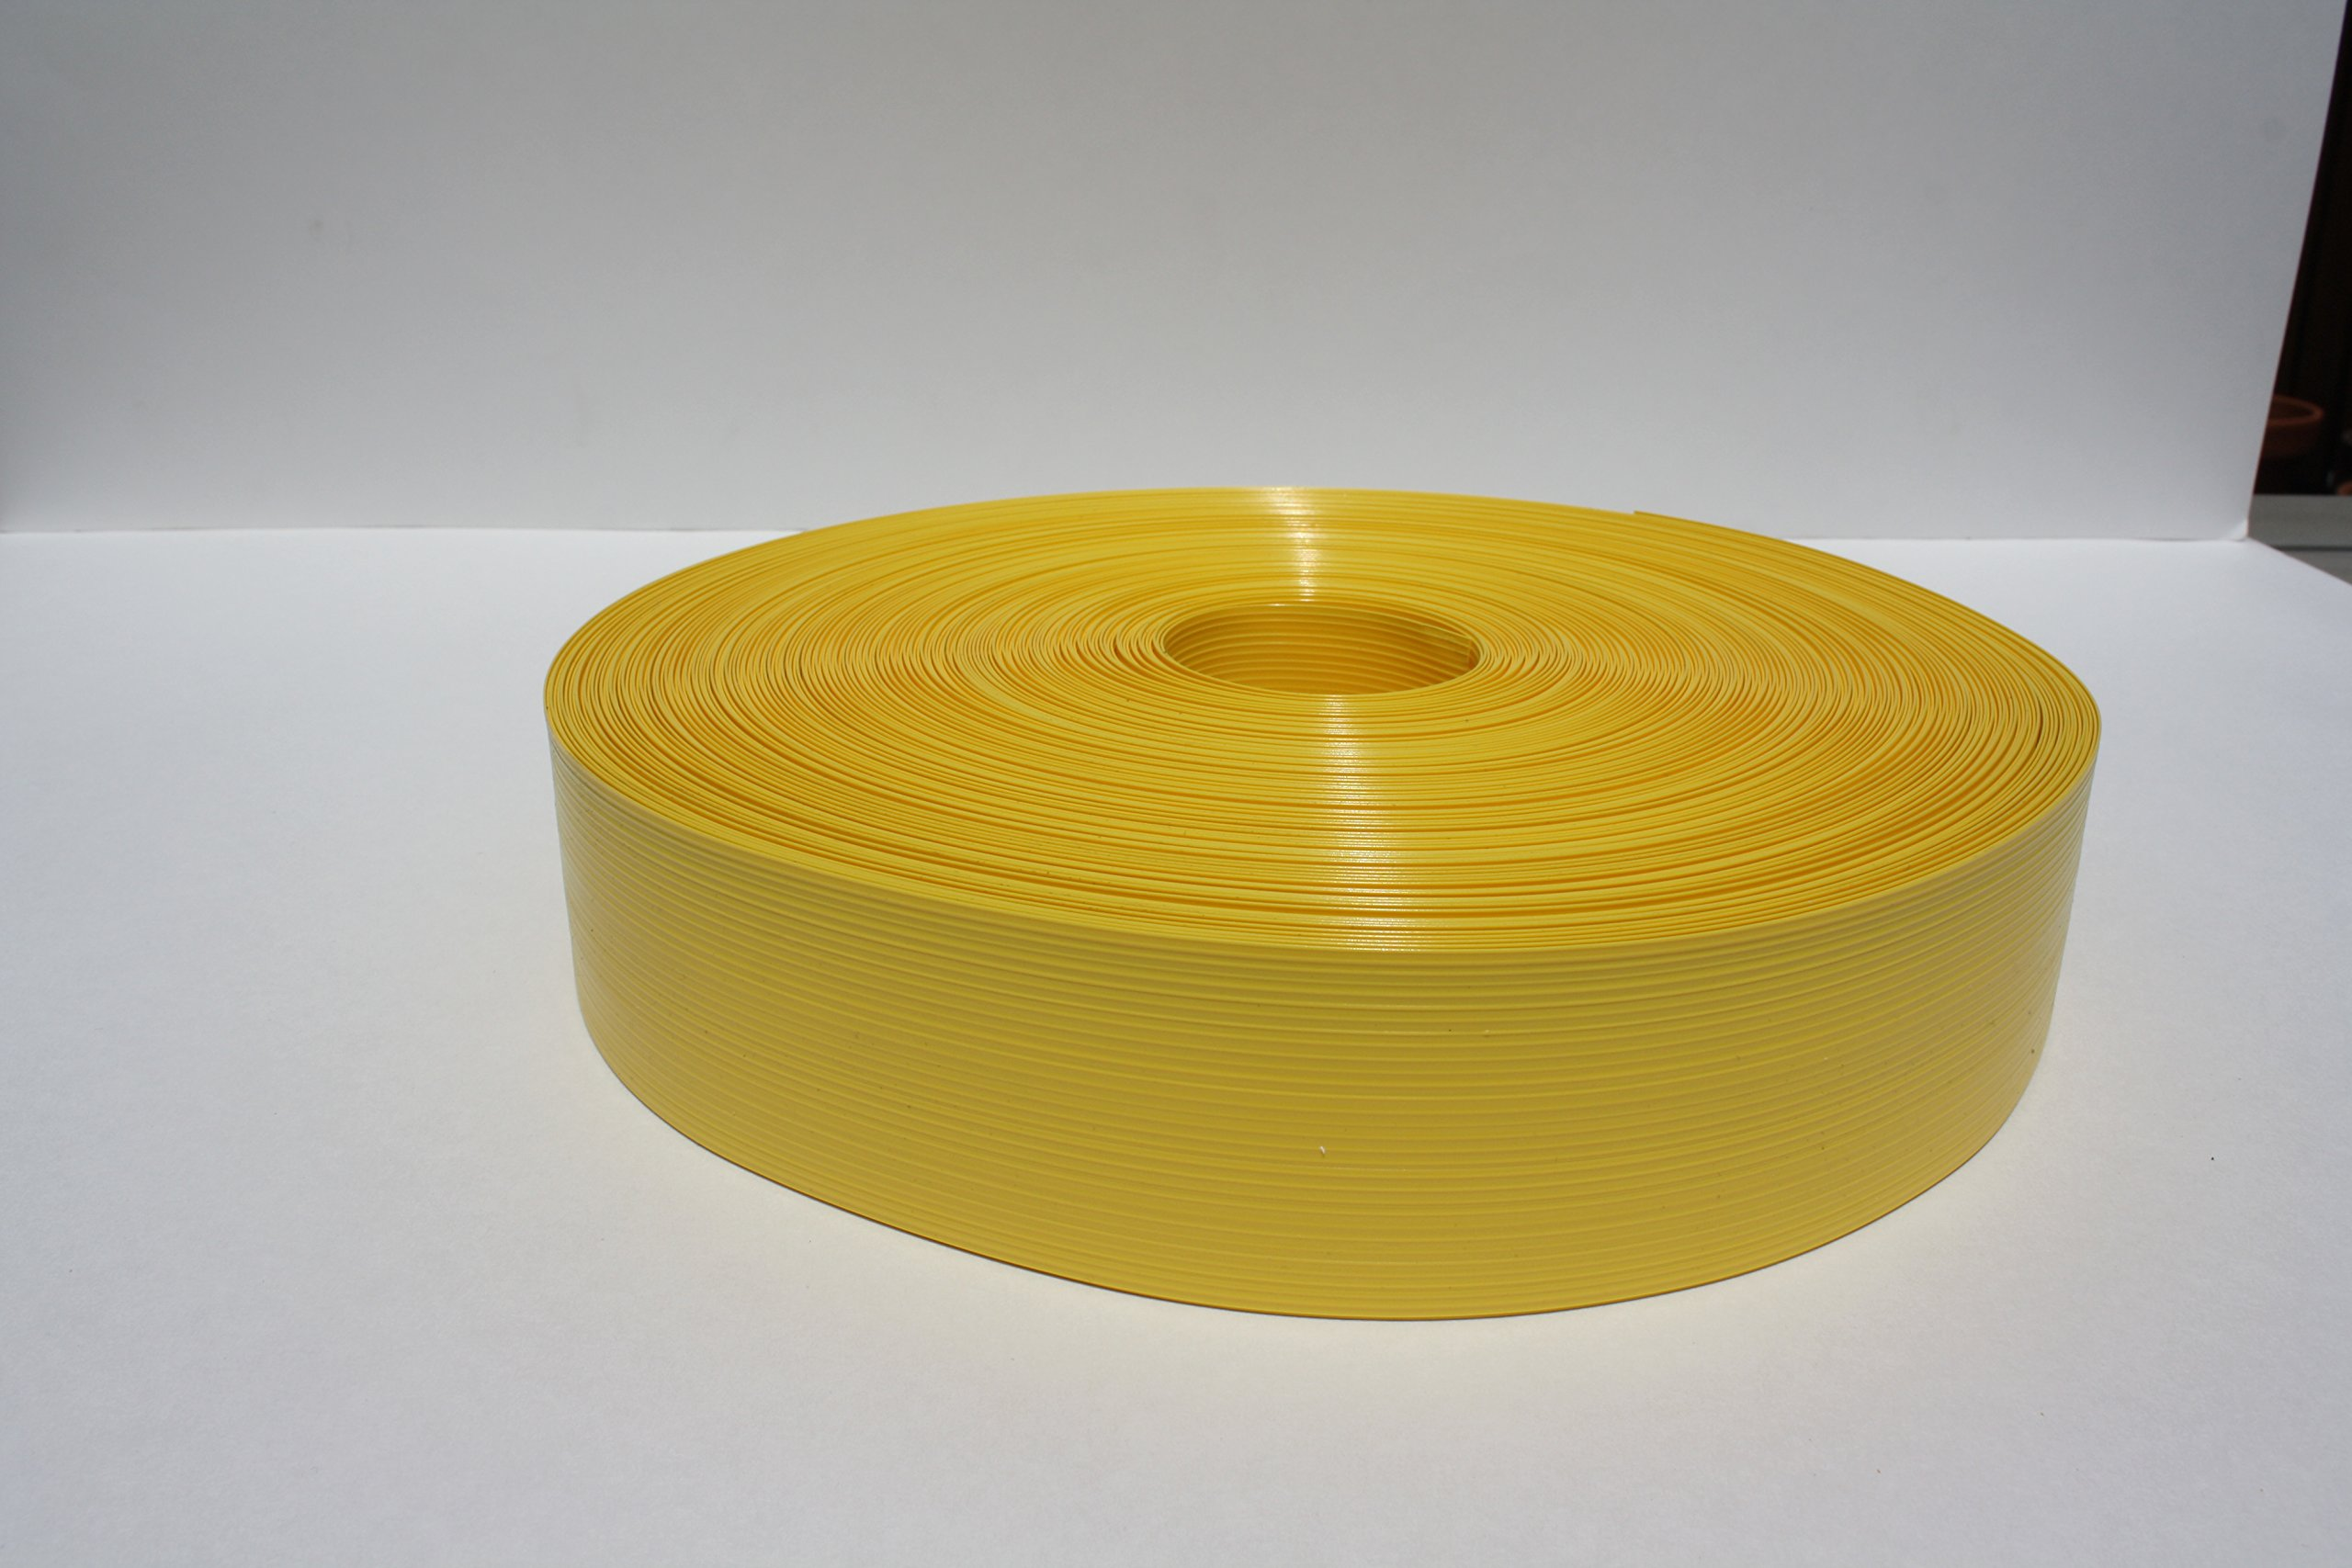 PATRICIAN PRODUCTS 250 ft. Yellow Fence Weave Roll in